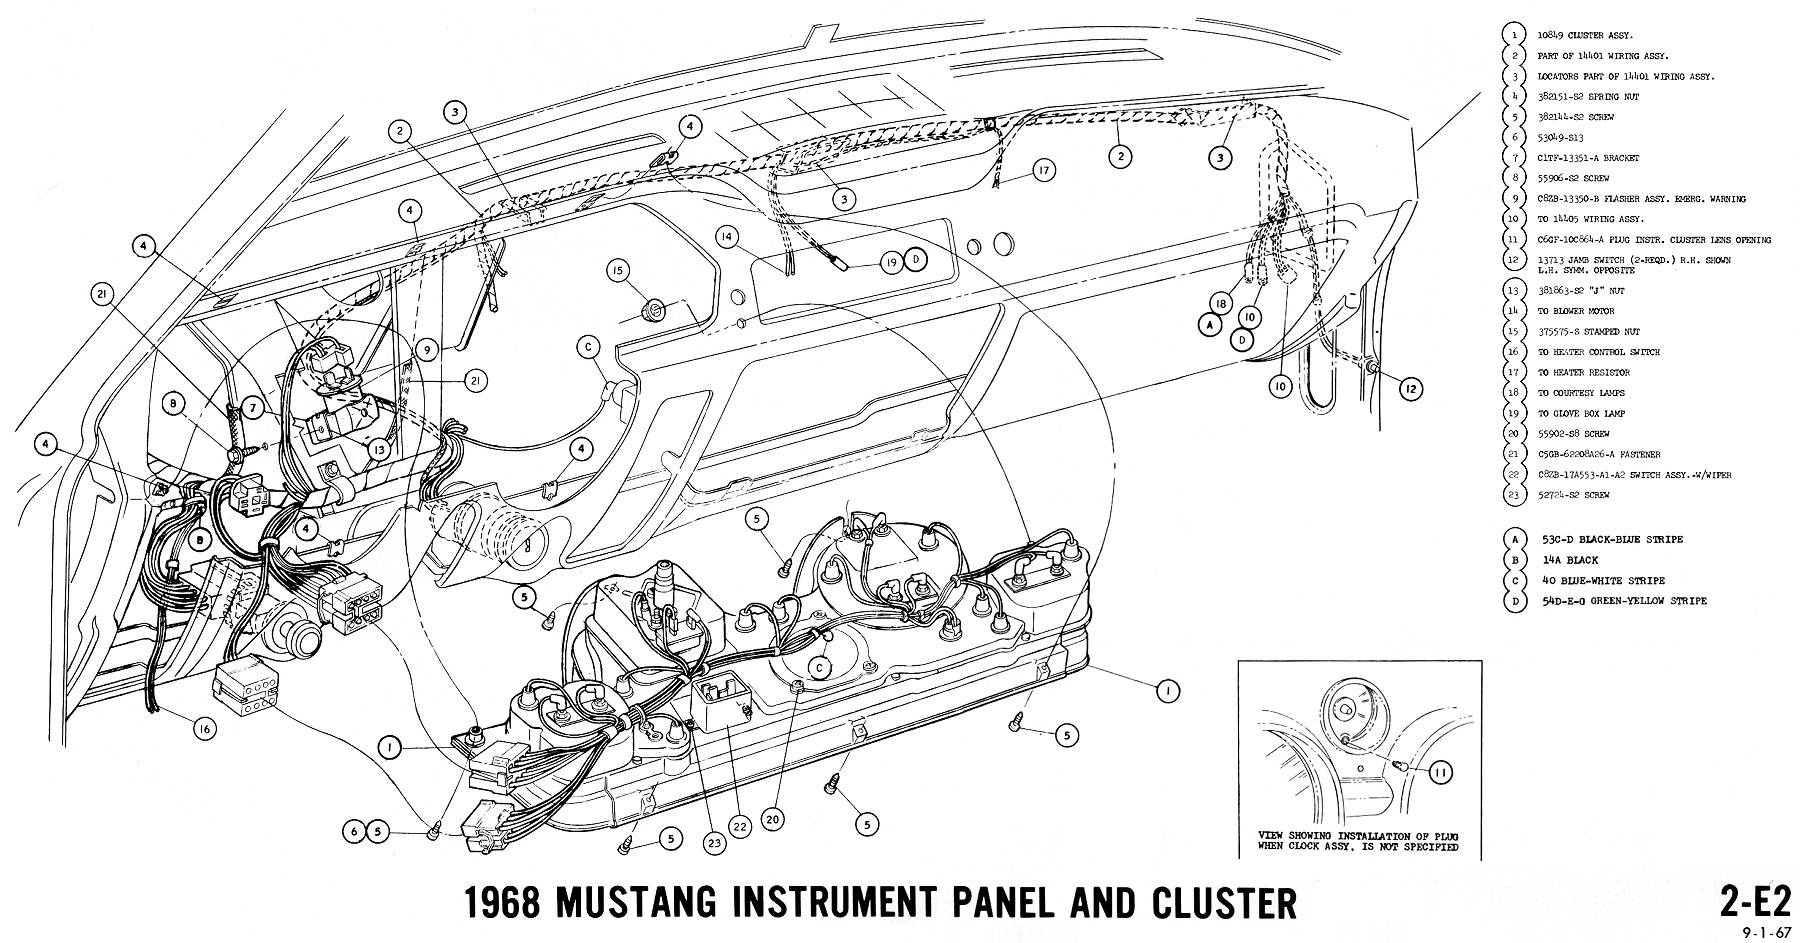 70 Mustang Wiring Diagram For Cluster Content Resource Of Ford Alternator 1968 Diagrams Evolving Software Rh Peterfranza Com 1986